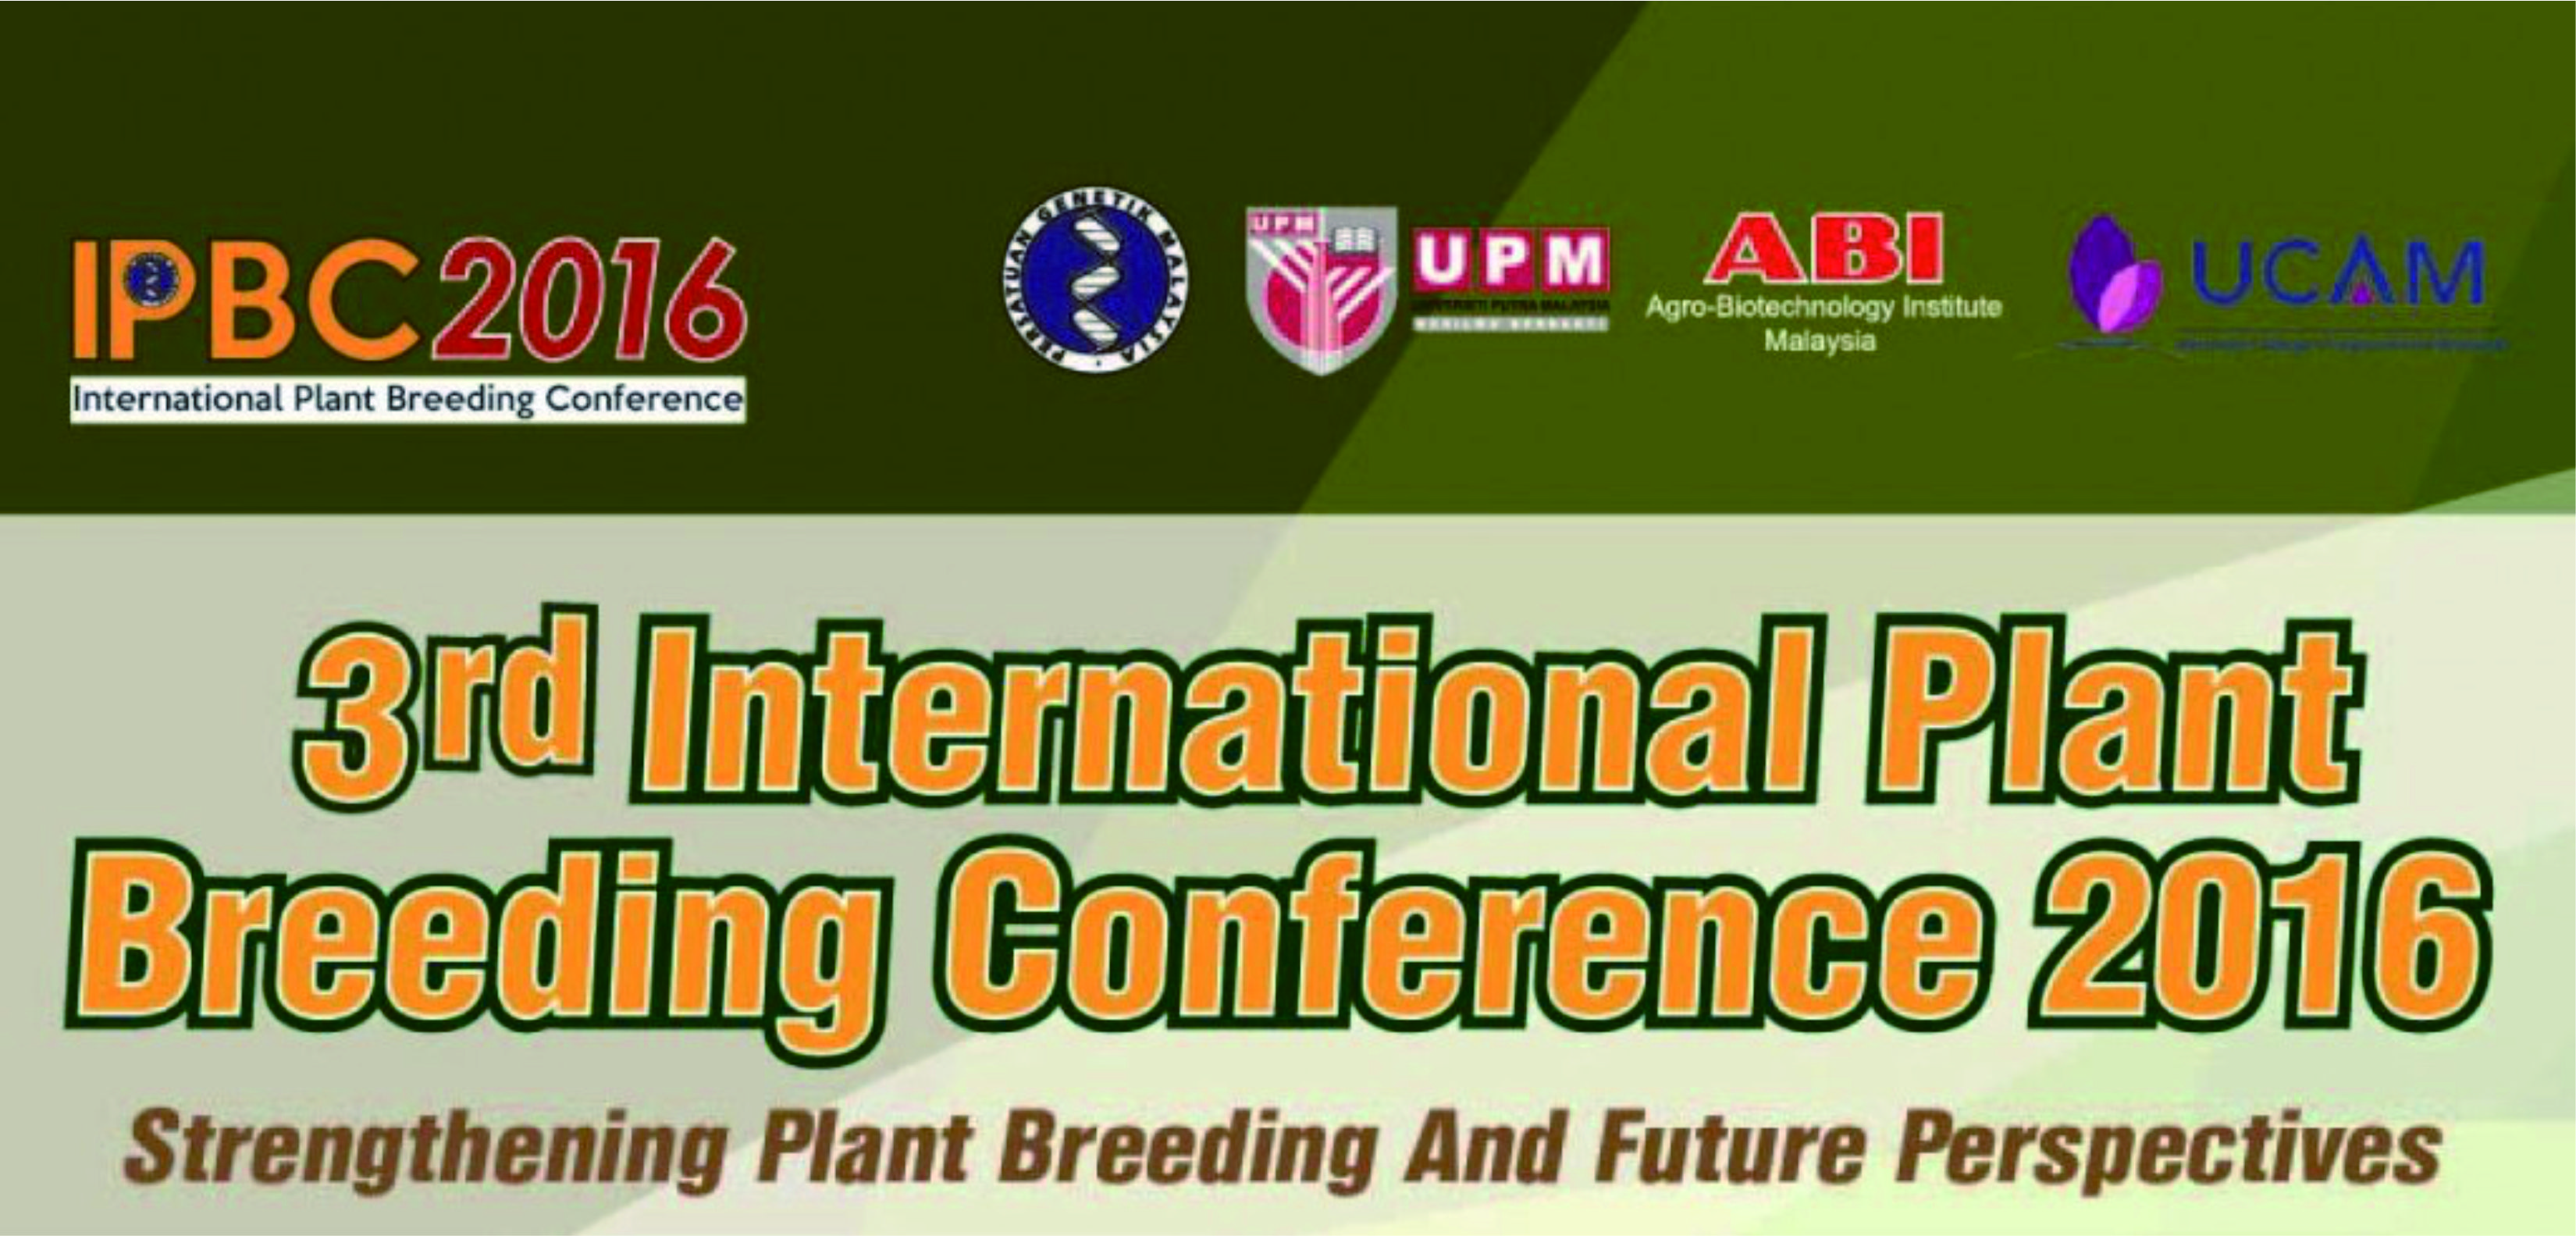 3rd International Plant Breeding Conference 2016 (IPBC 2016)